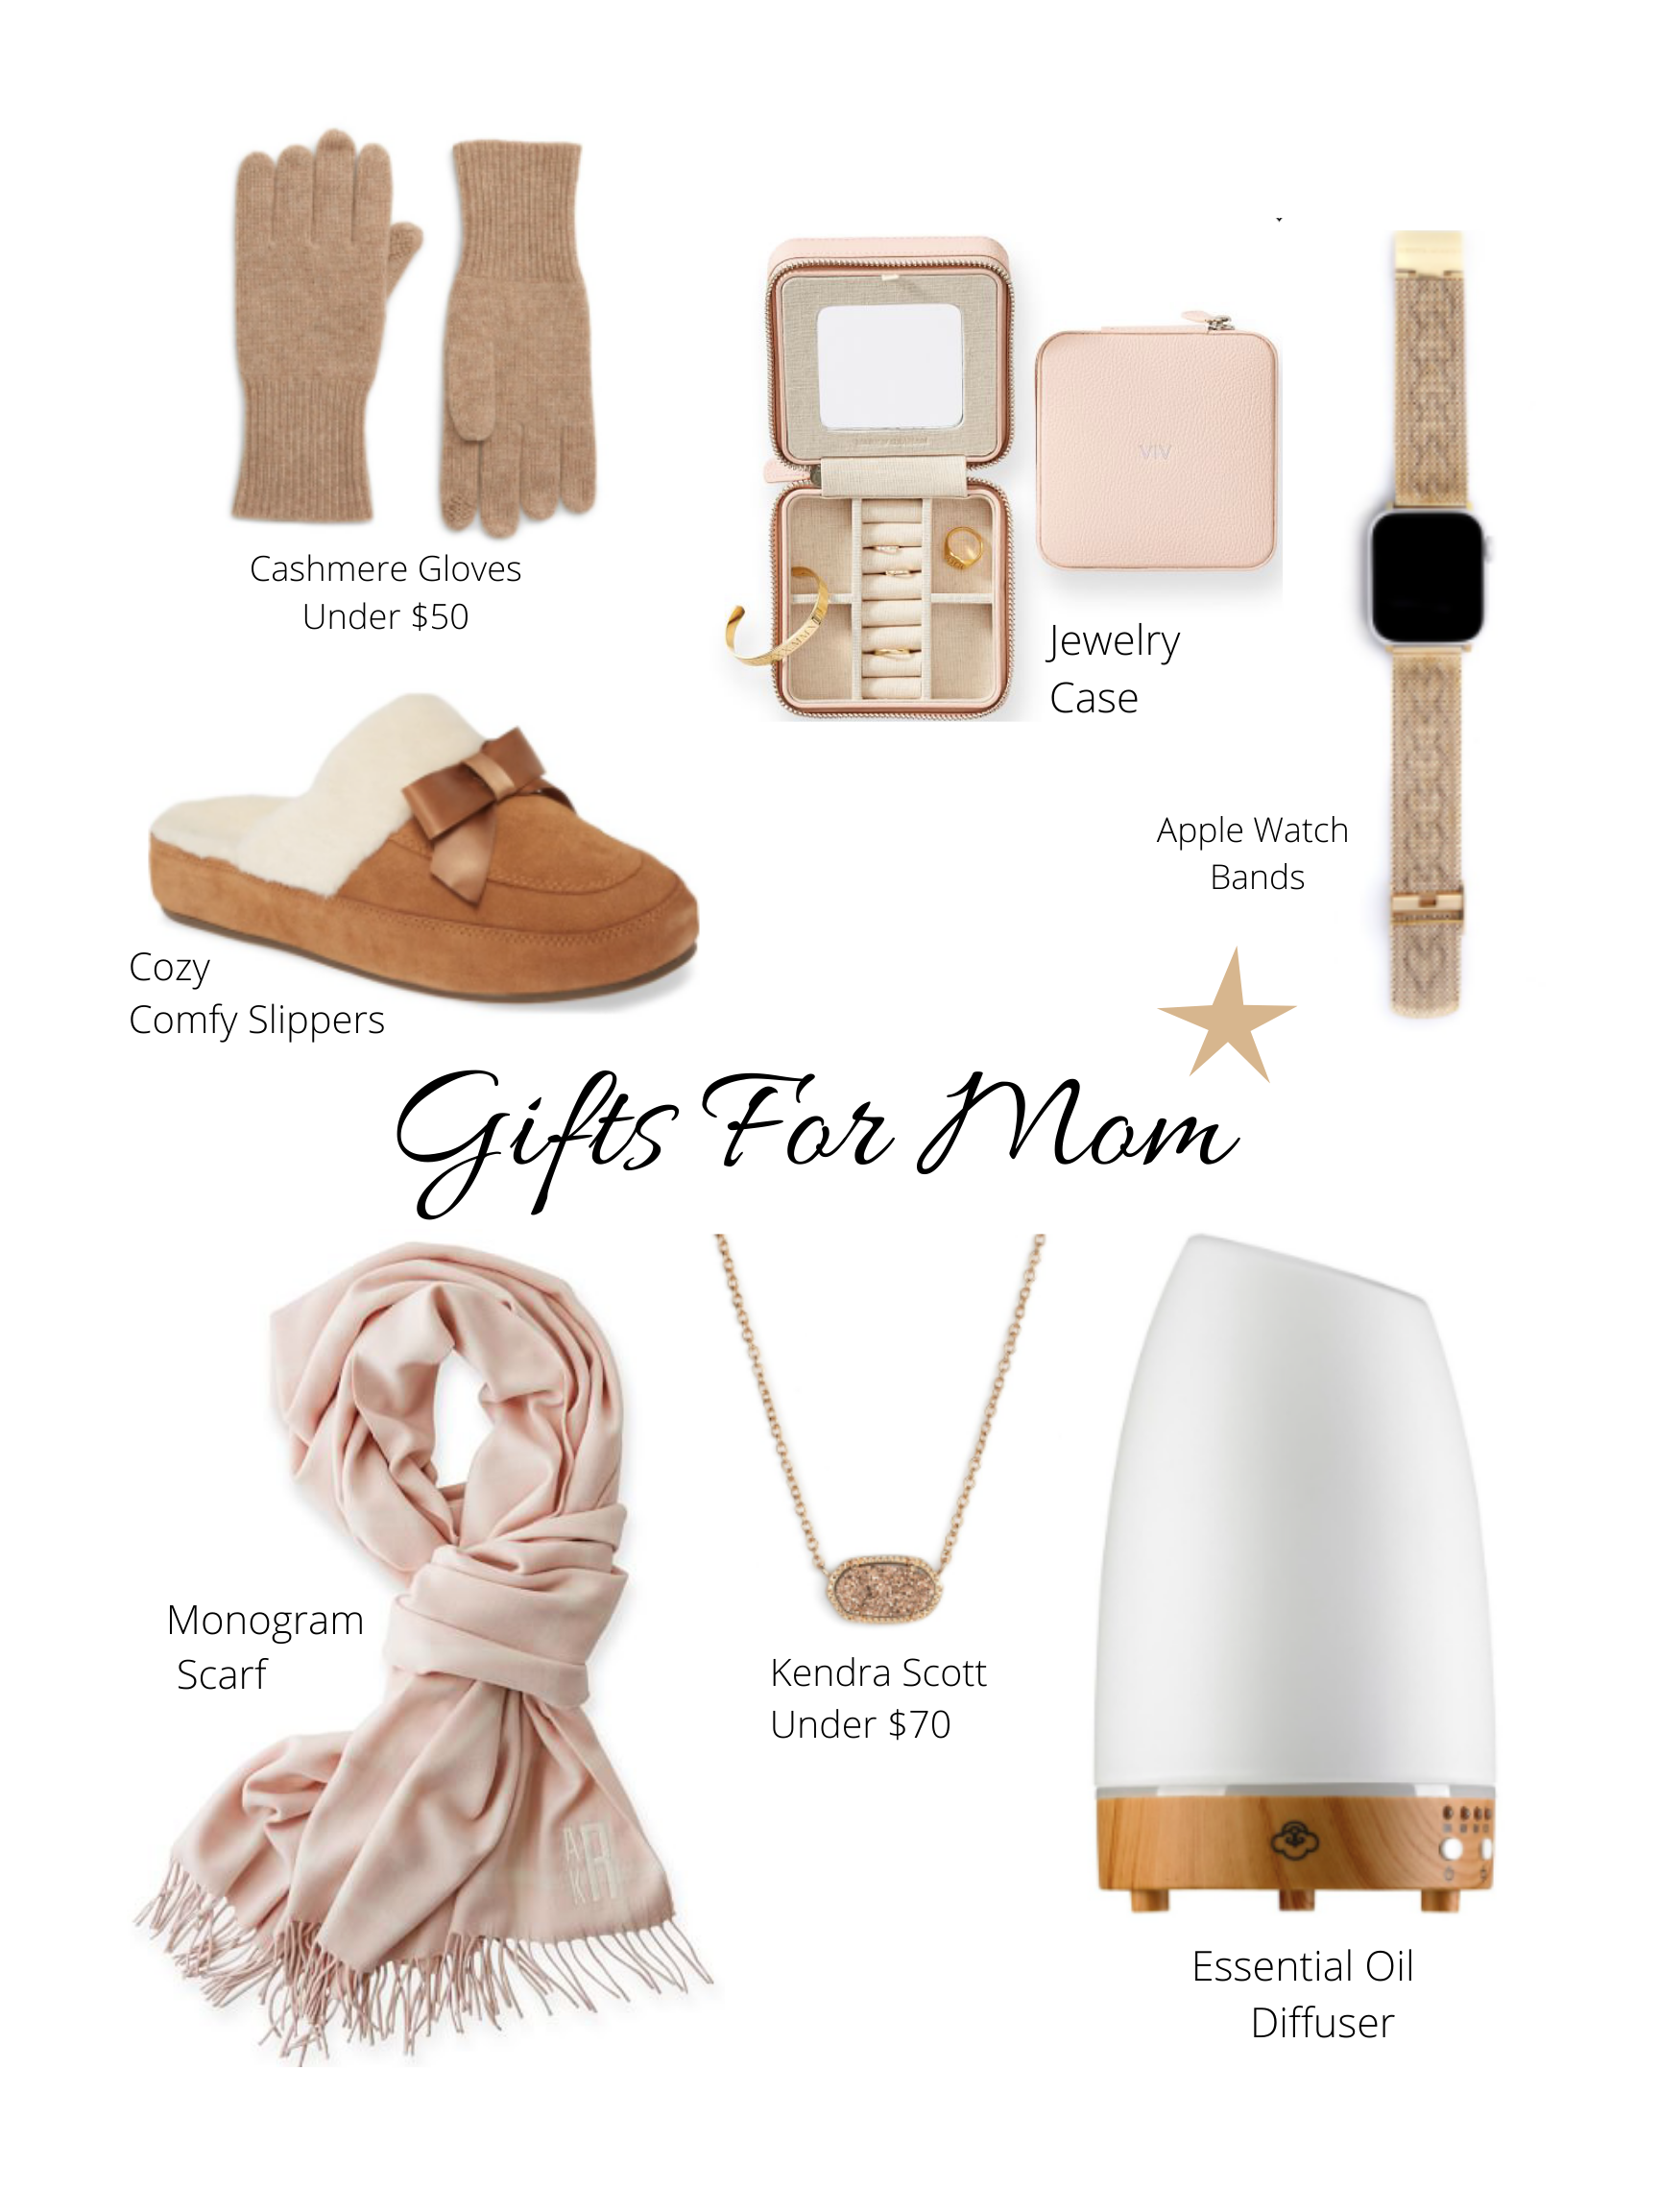 Gift Ideas for mom under $100